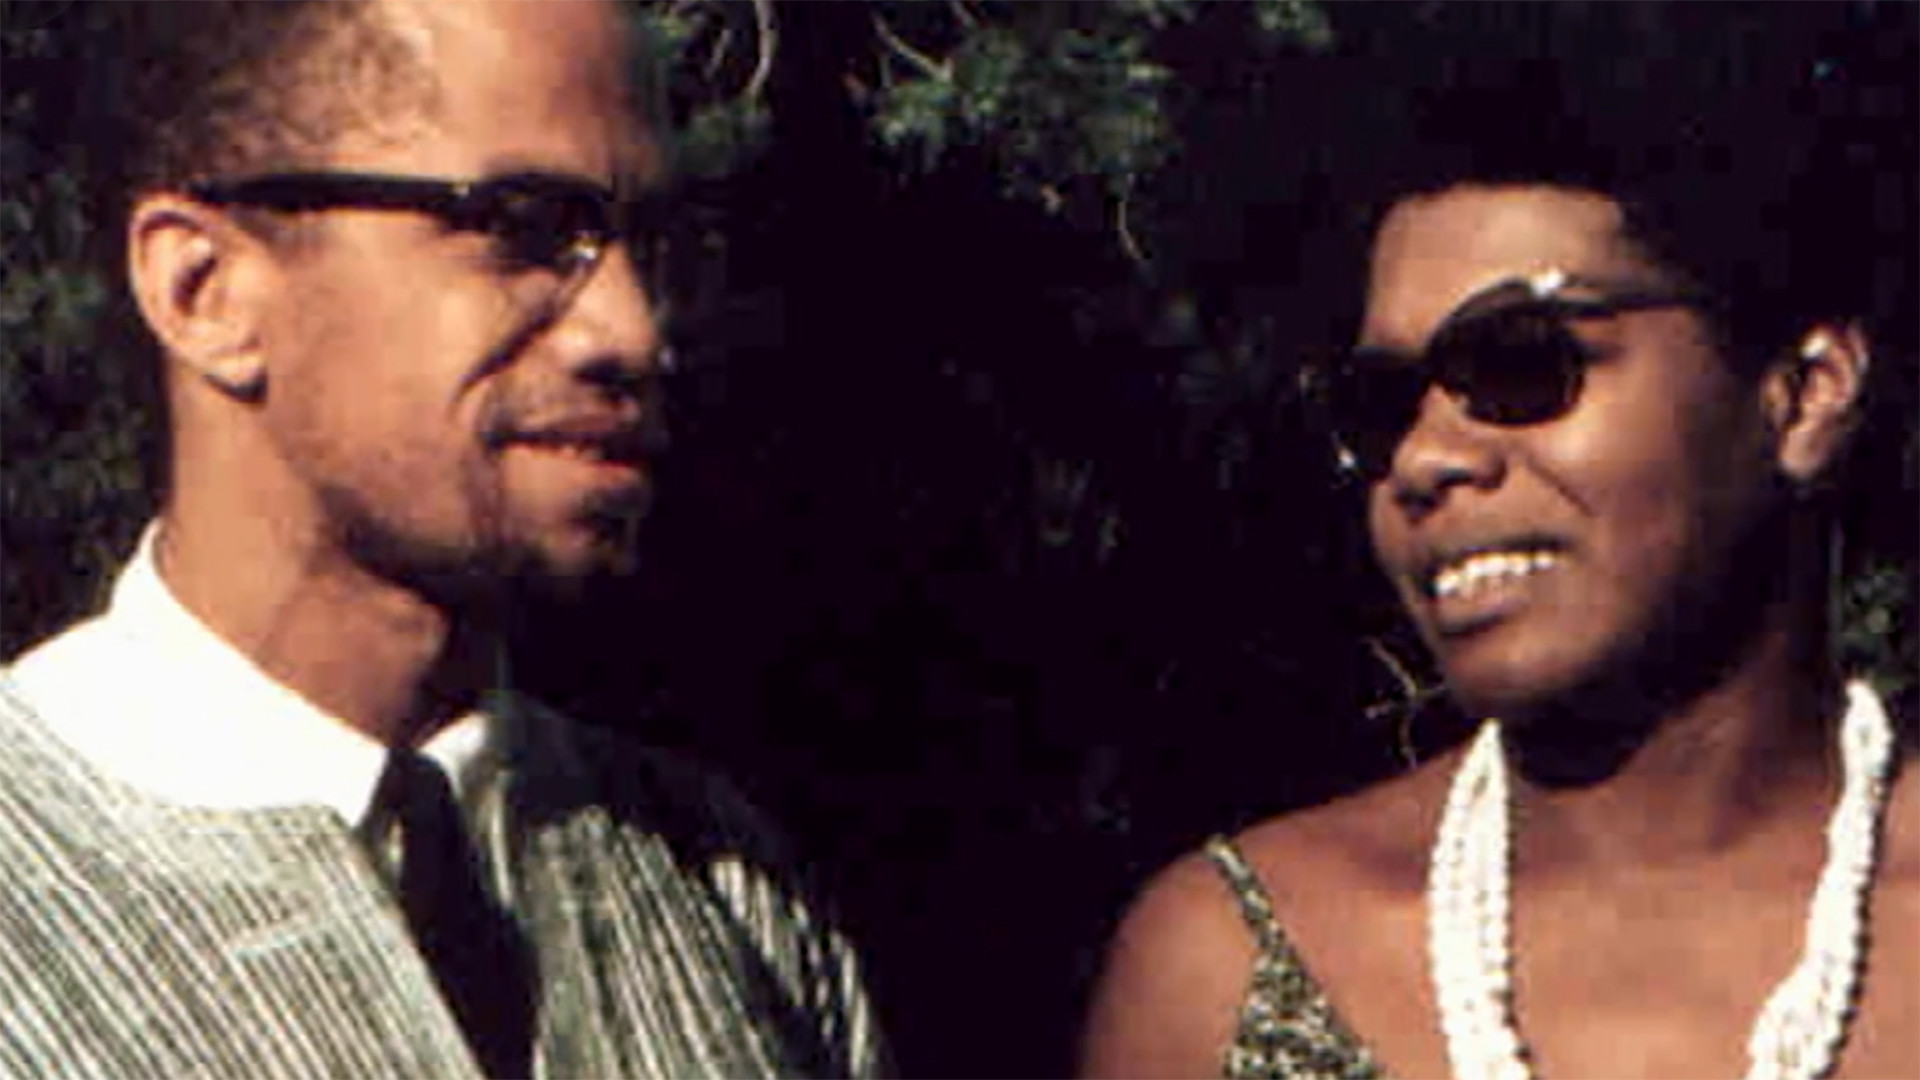 1920x1080 Explore the strong friendship between Maya Angelou and Malcolm X in Ghana |  American Masters | PBS